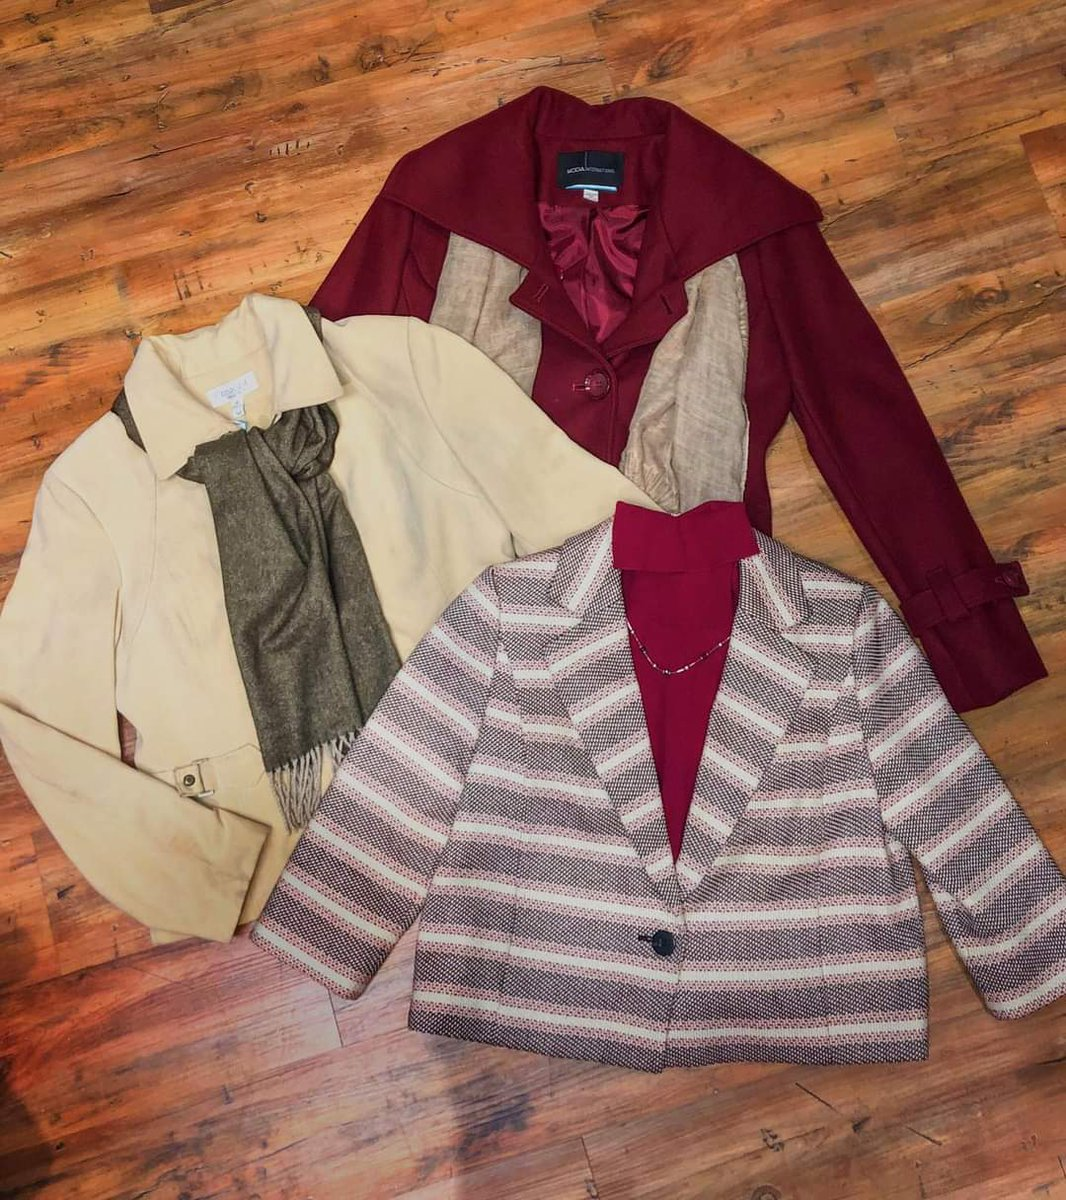 ‼️THIS WEEK ONLY‼️ All Santa's are 10% off Coats, blazers, & jackets are 15% off! Sale ends this Saturday, so hurry in!  We're open 10:00-5:00 Tuesday-Saturday!   Shop our online store at   #consignment #consignmentshopping #resale #womansapparel #shopsmall